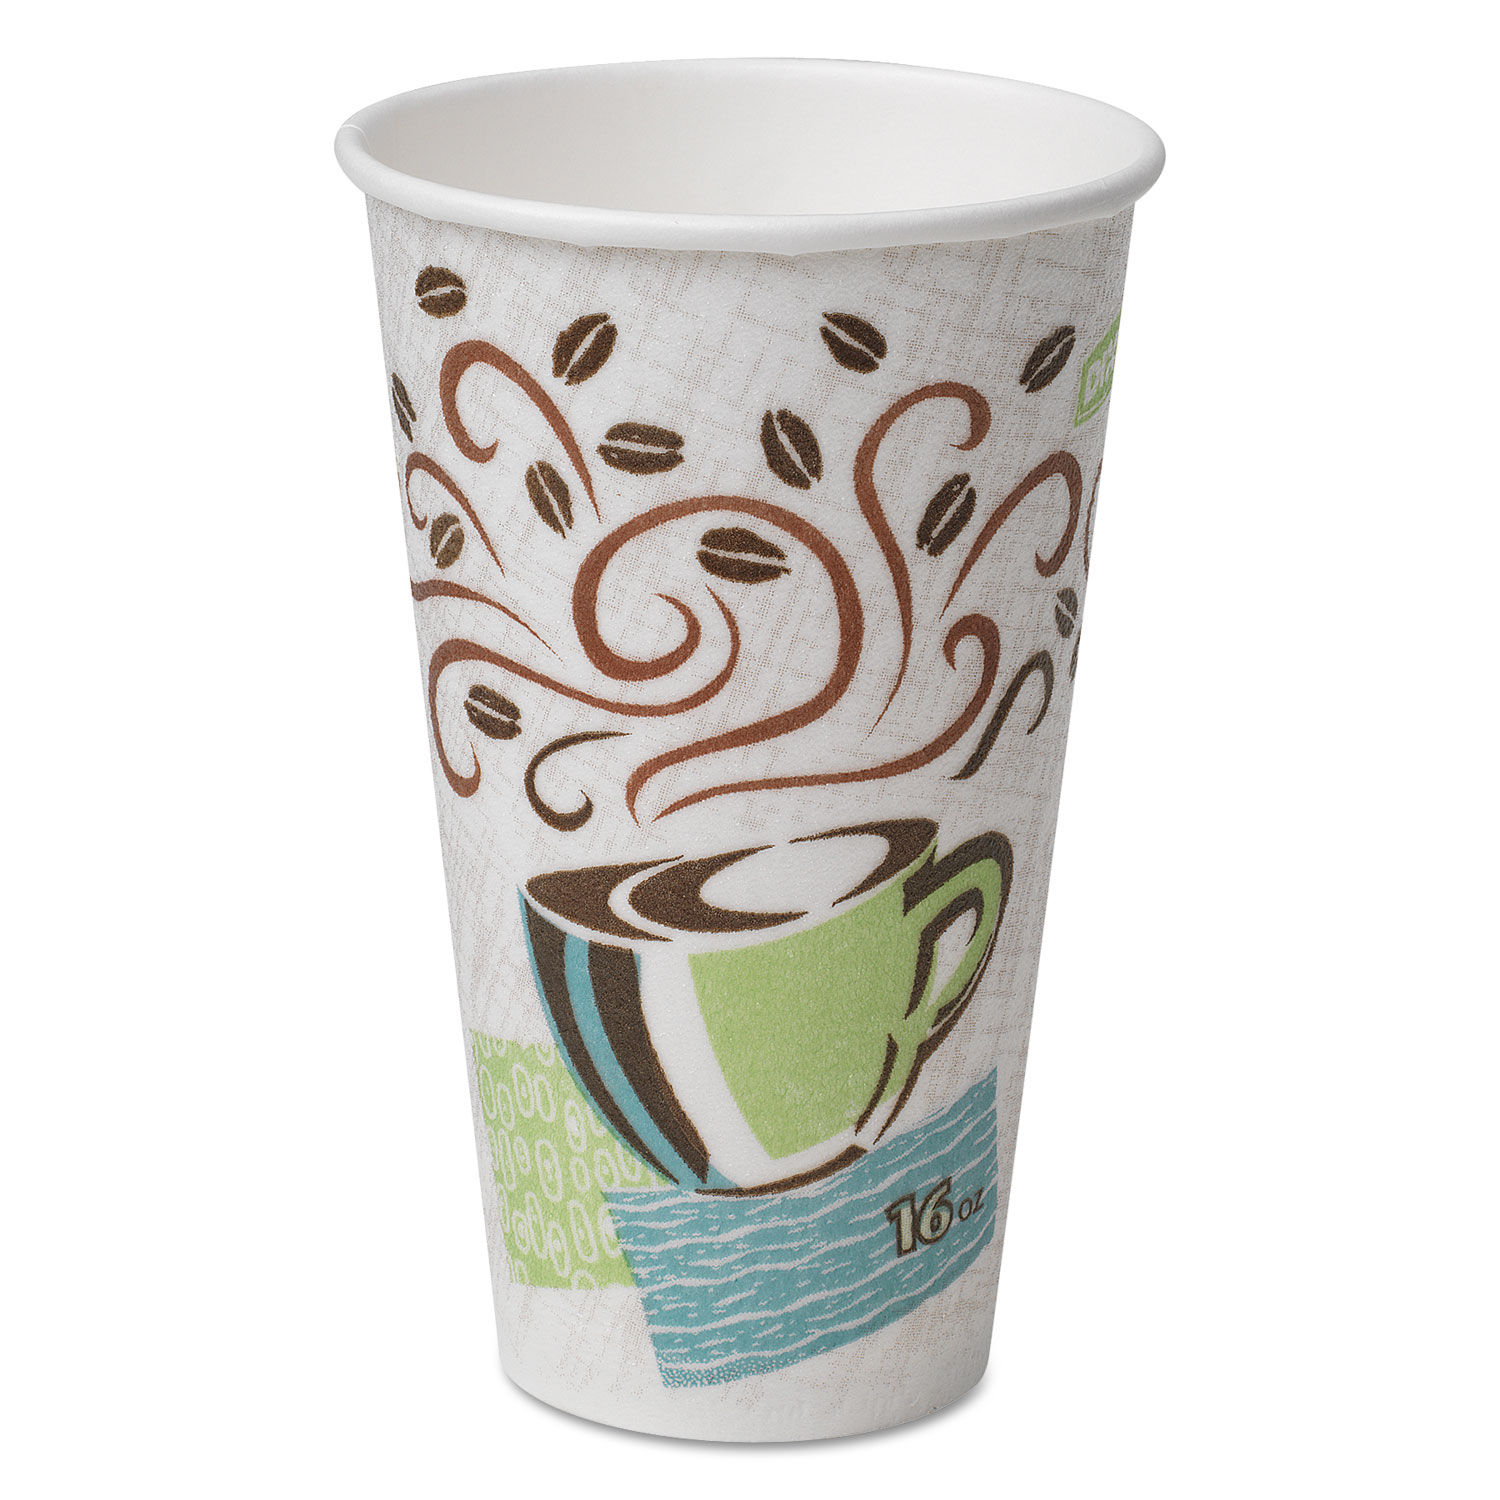 PerfecTouch Paper Hot Cups, 16 oz, Coffee Dreams Design, 50/Pack, 20 Packs/Carton